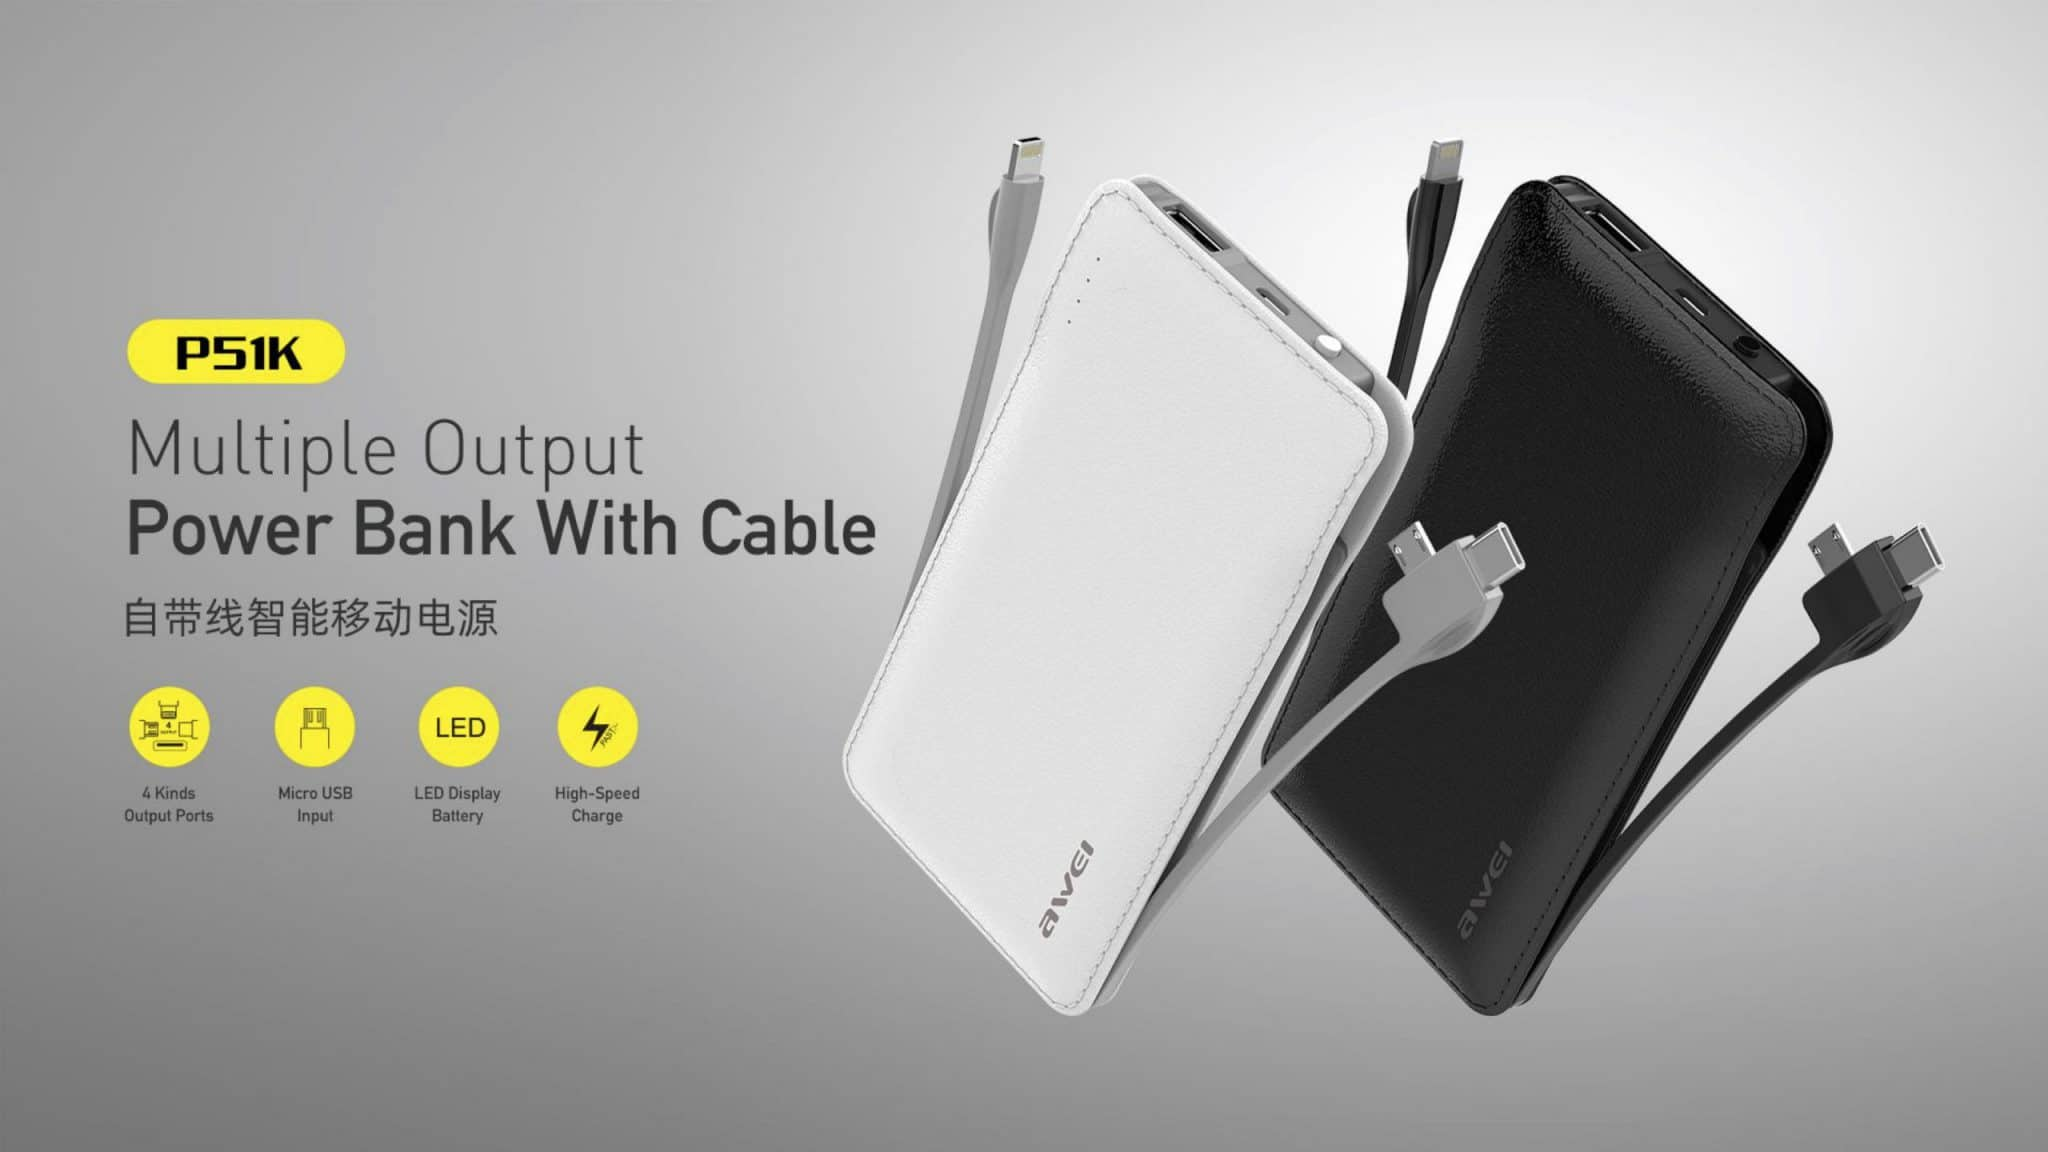 Awei Multiple Output Power Bank With Cable P51K